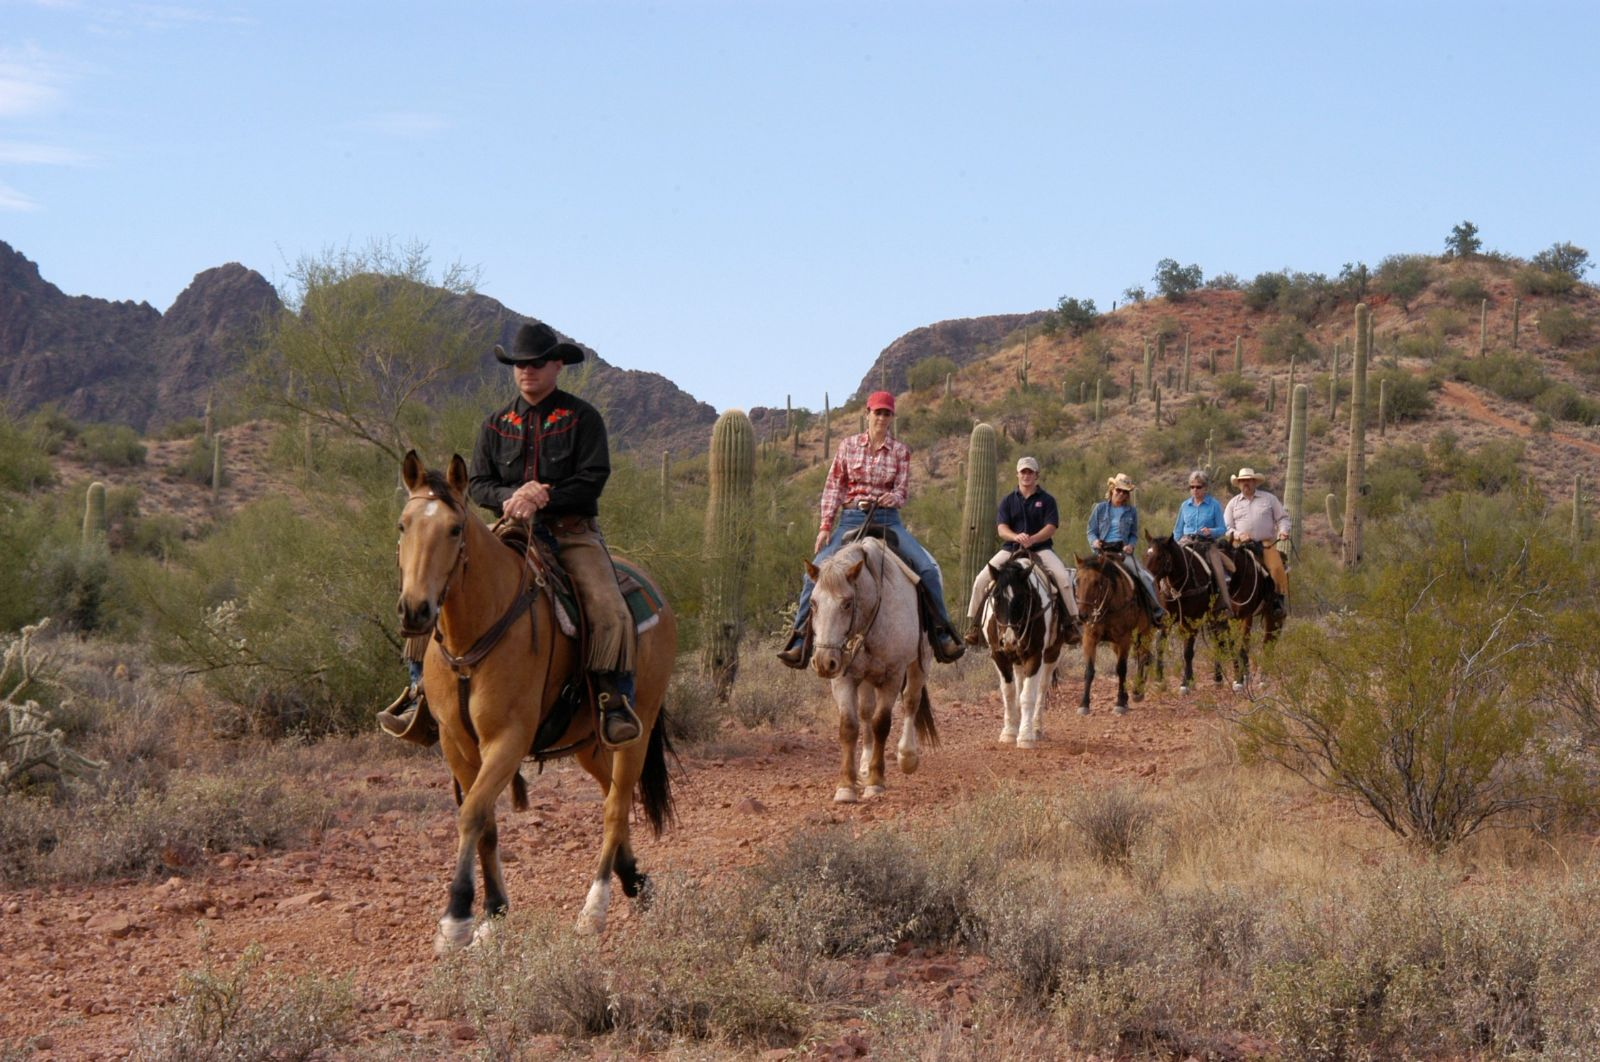 All-Day horseback trail ride at Rancho de los Caballeros